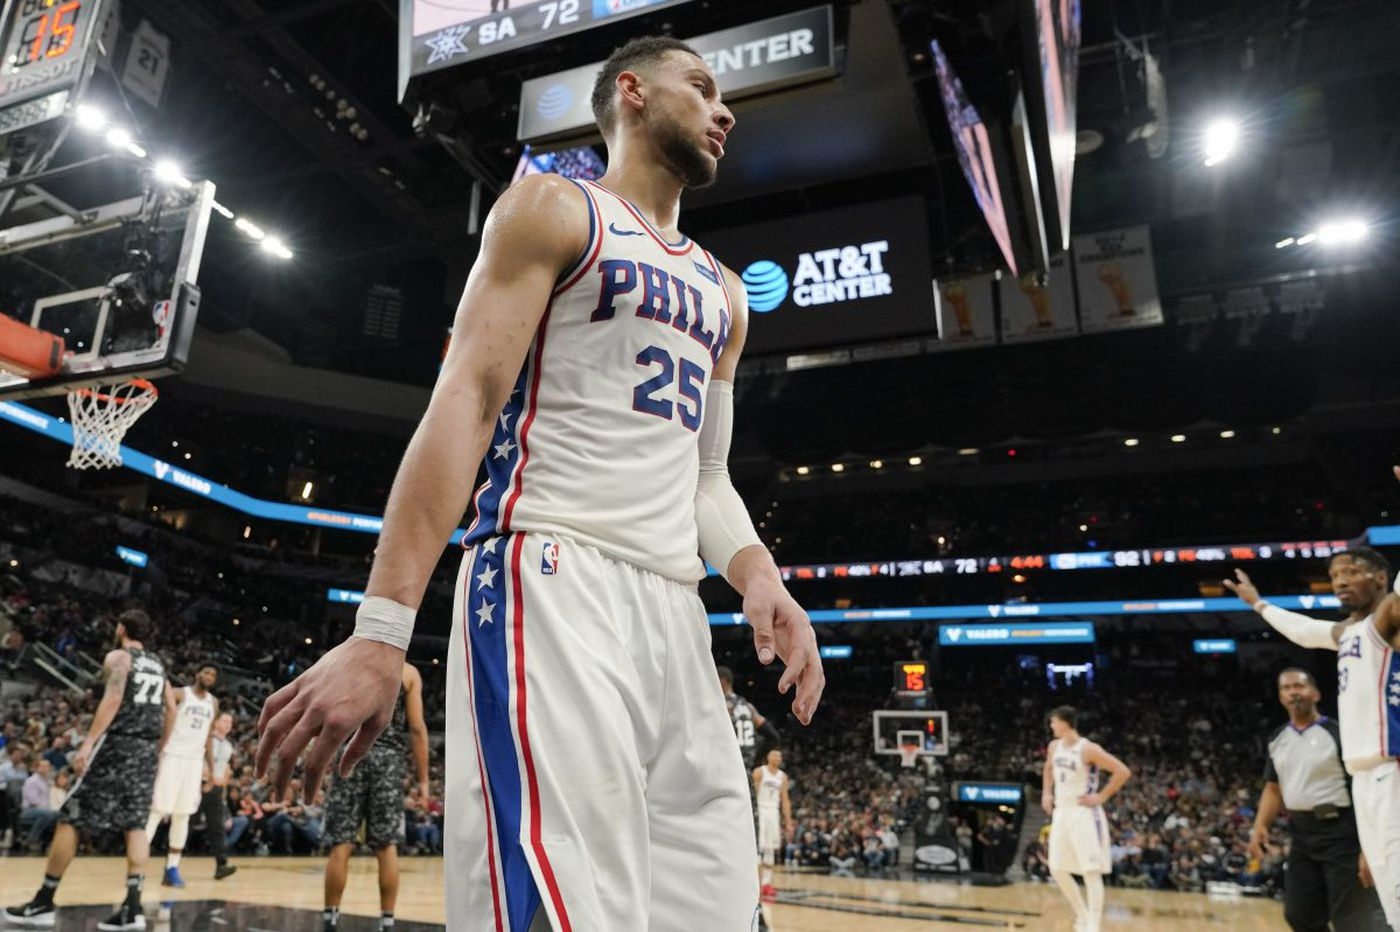 Sixers-Spurs observations, 'best' and 'worst' awards: Joel Embiid, Danny Green and San Antonio's dismal performance